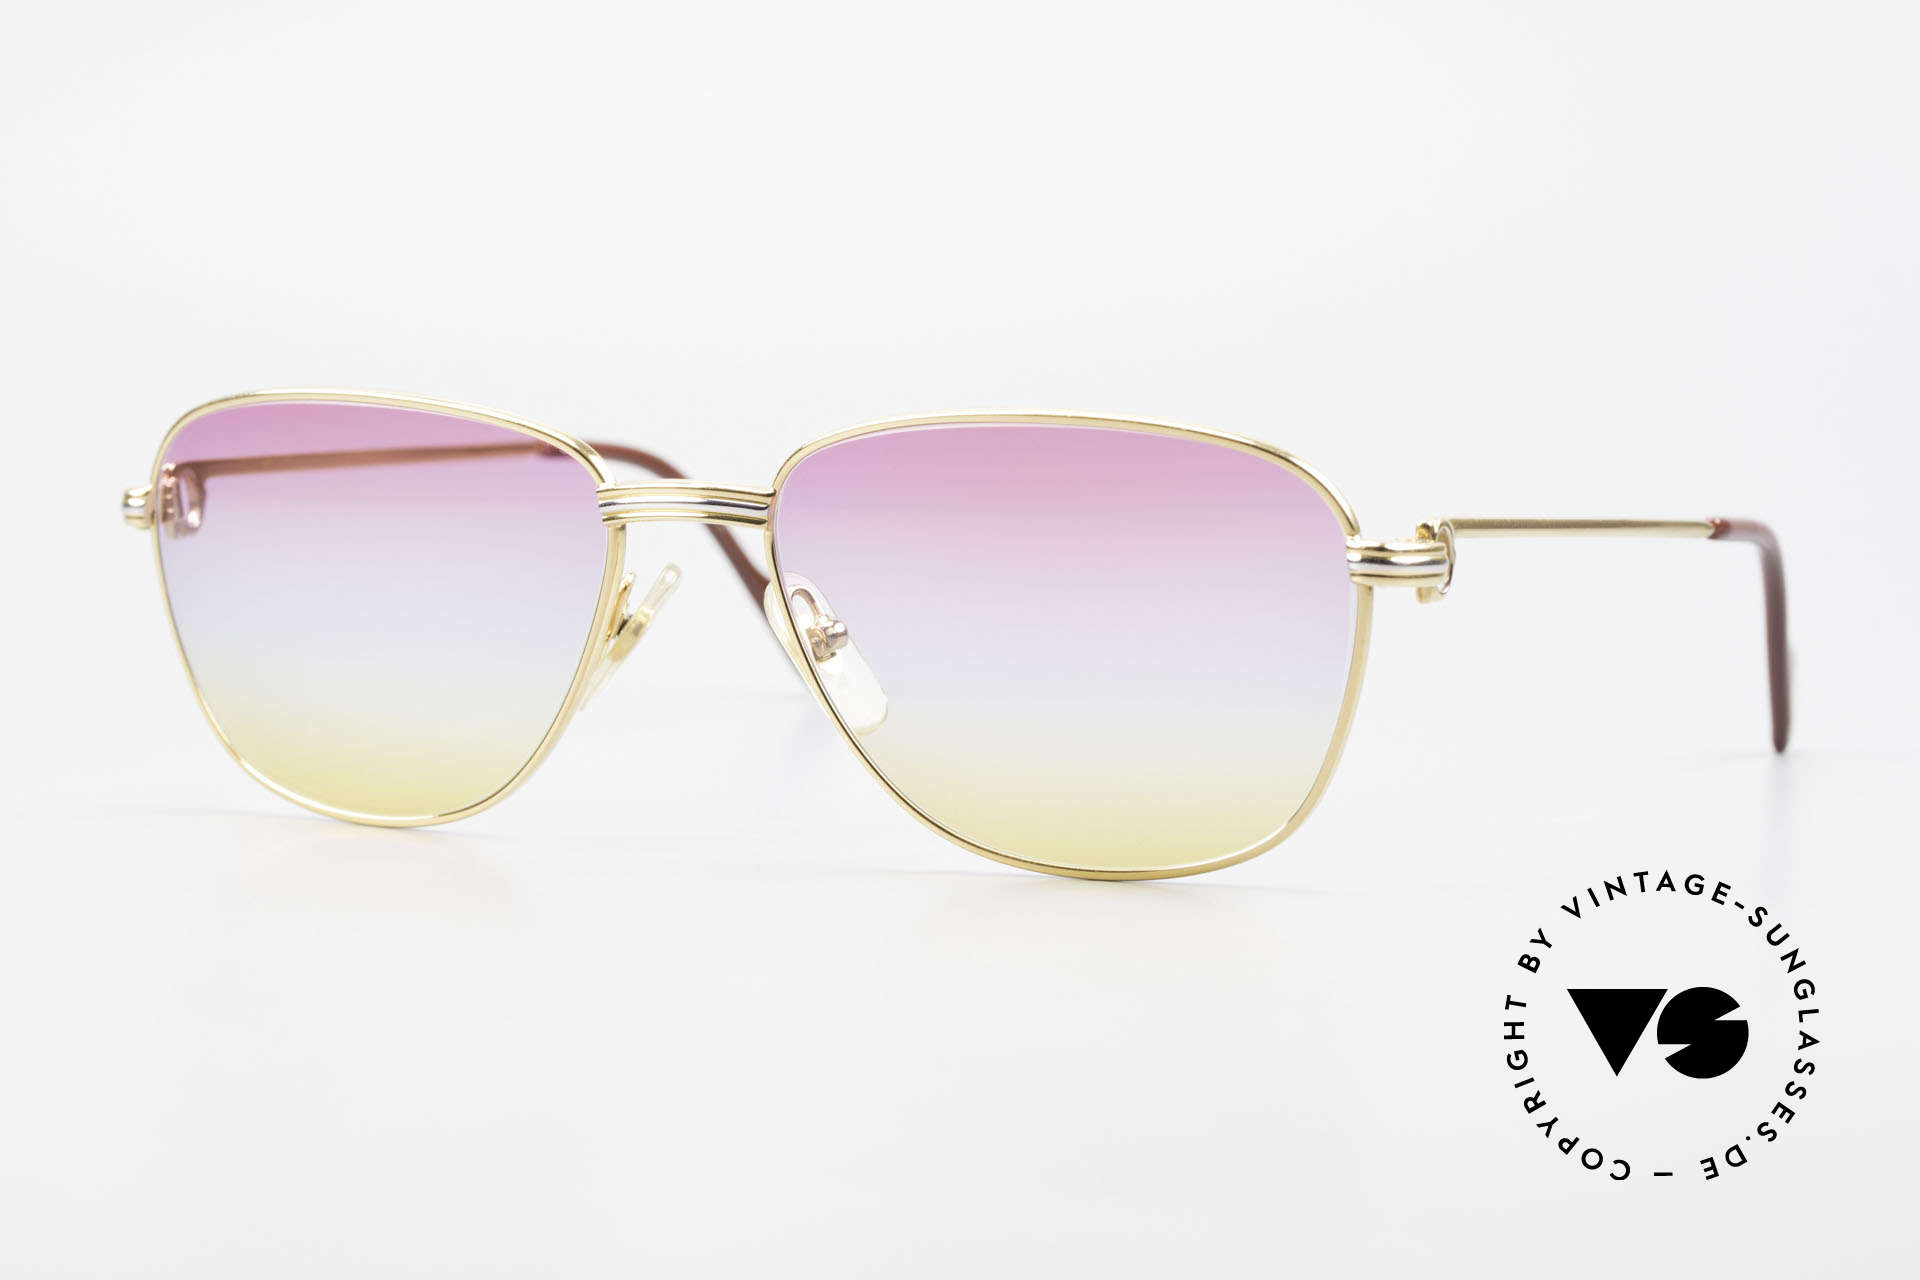 Cartier Courcelles Unique 90's Luxury Sunglasses, precious Cartier sunglasses of the 90's, M size 57°17, Made for Men and Women